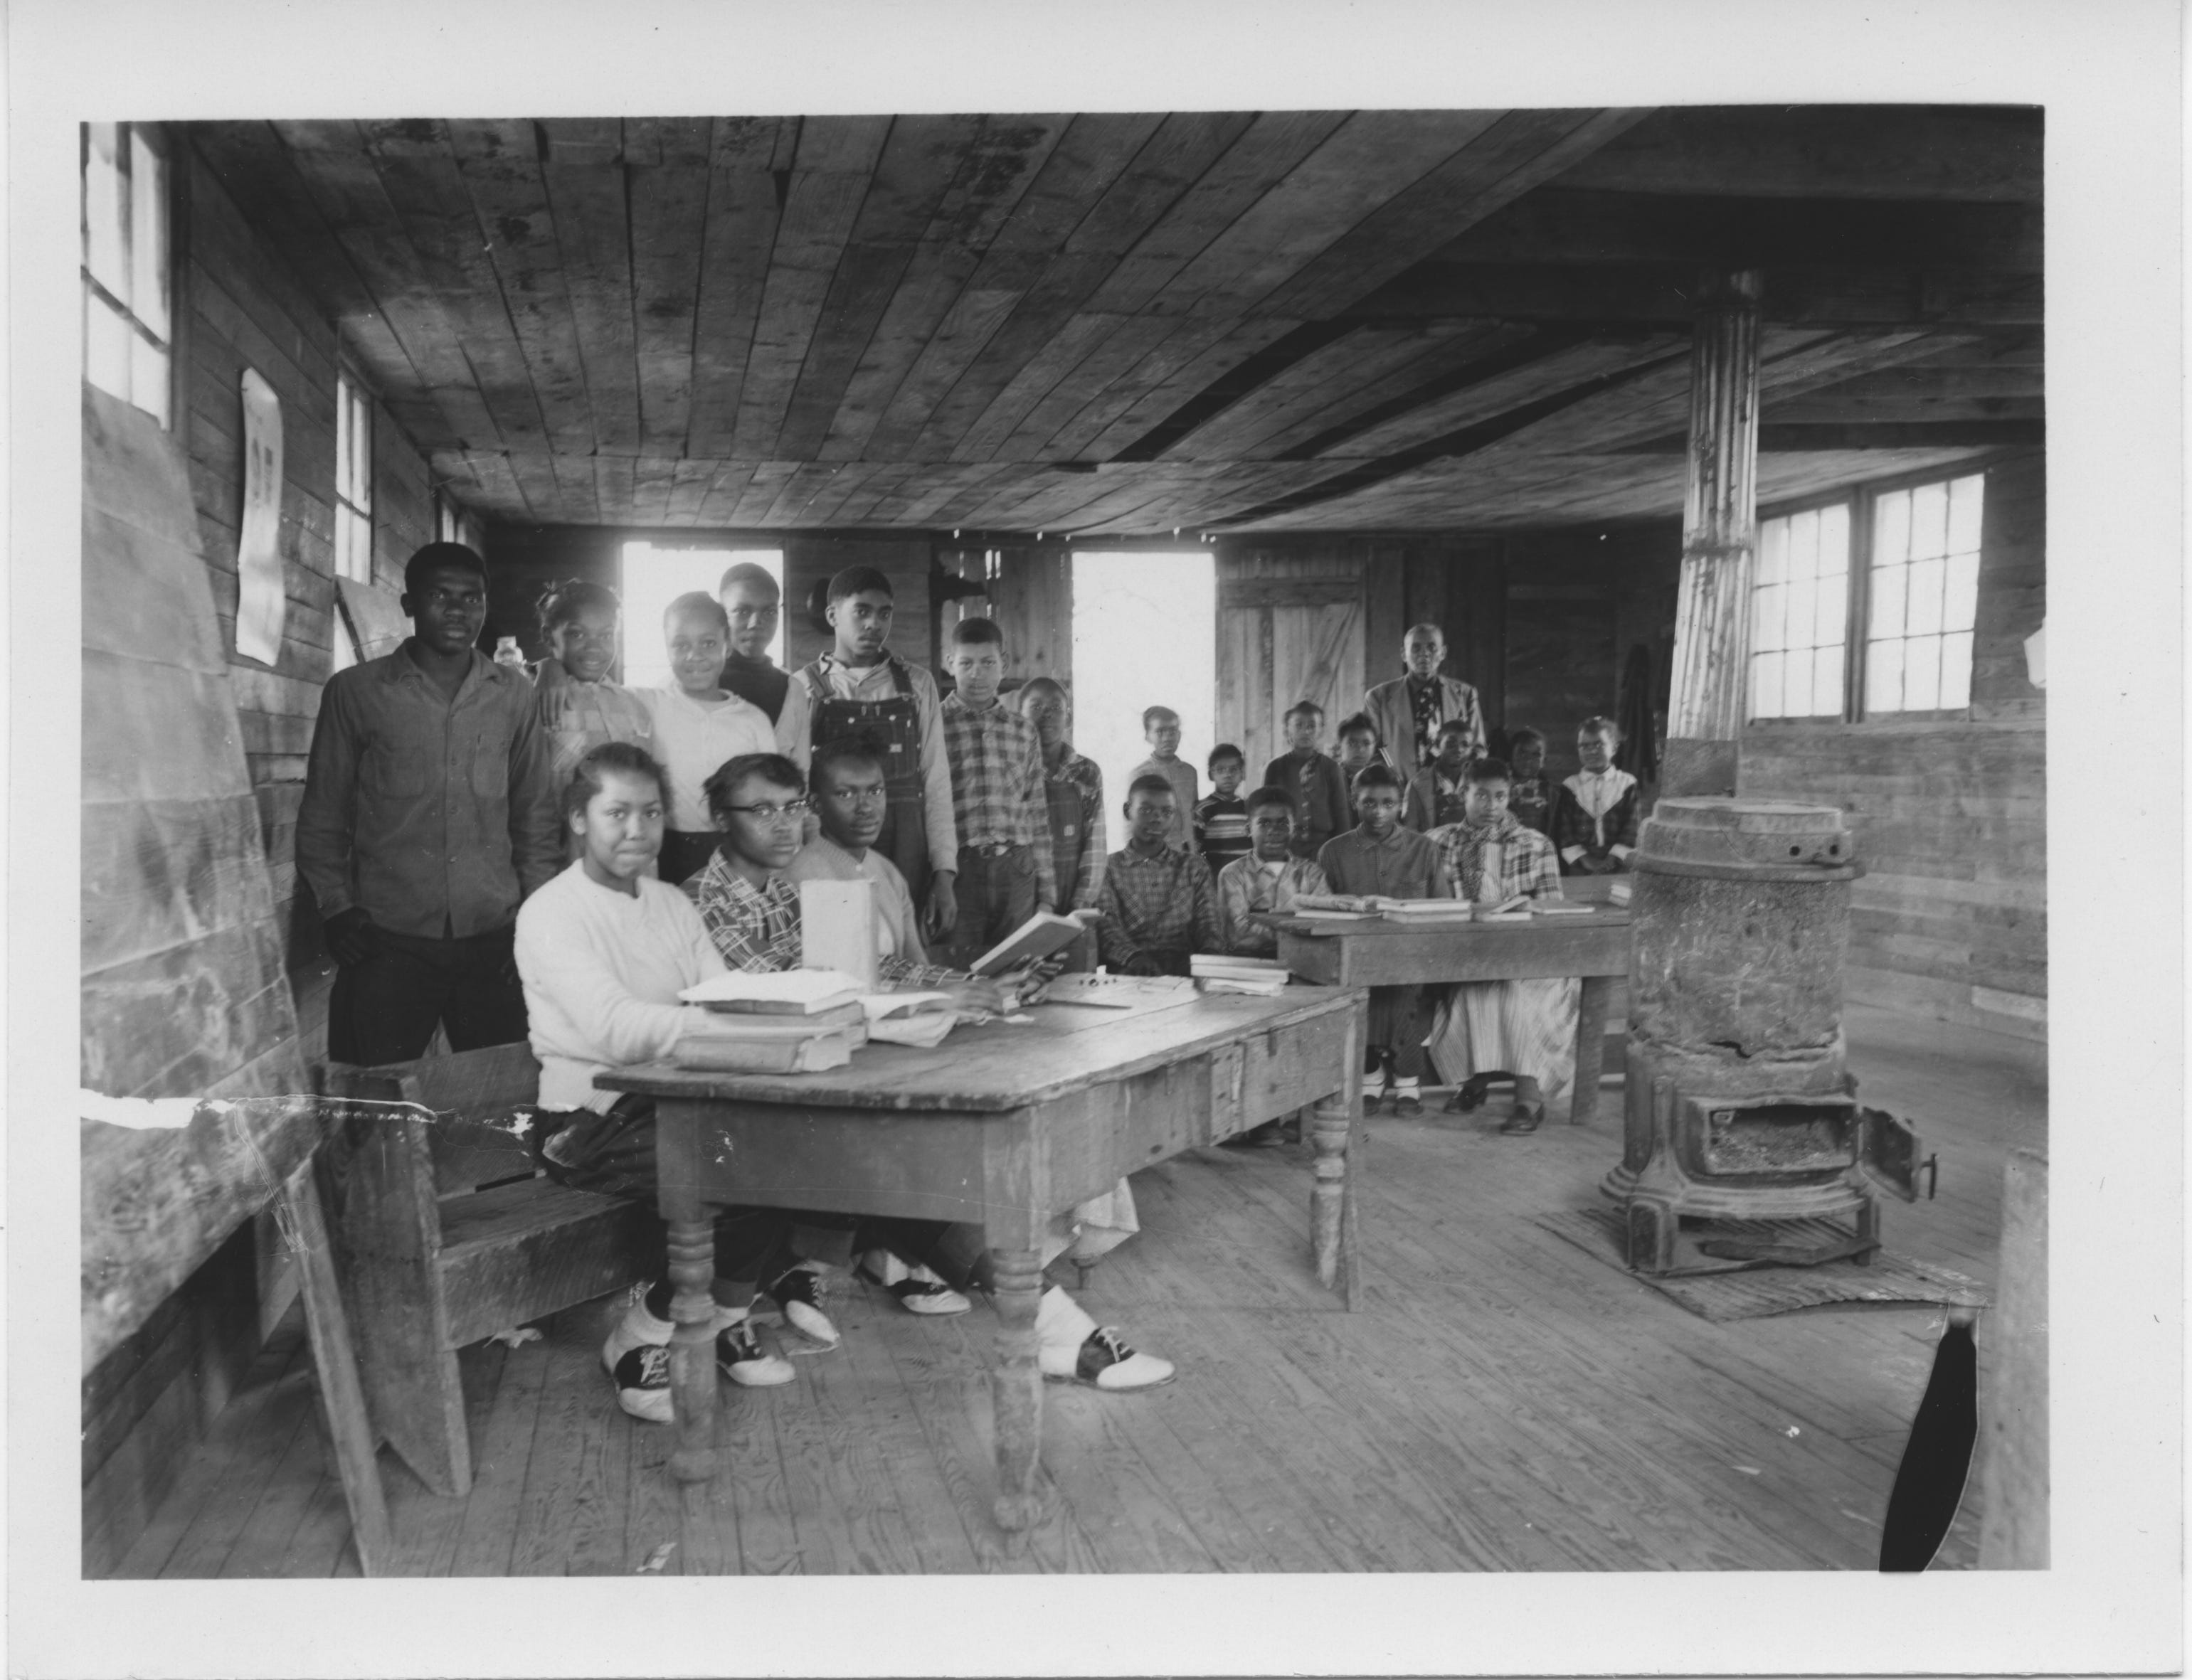 Inside the Pilgrim Rest School in Enid, Mississippi, where a wood stove was the only heat for Black students in 1955.